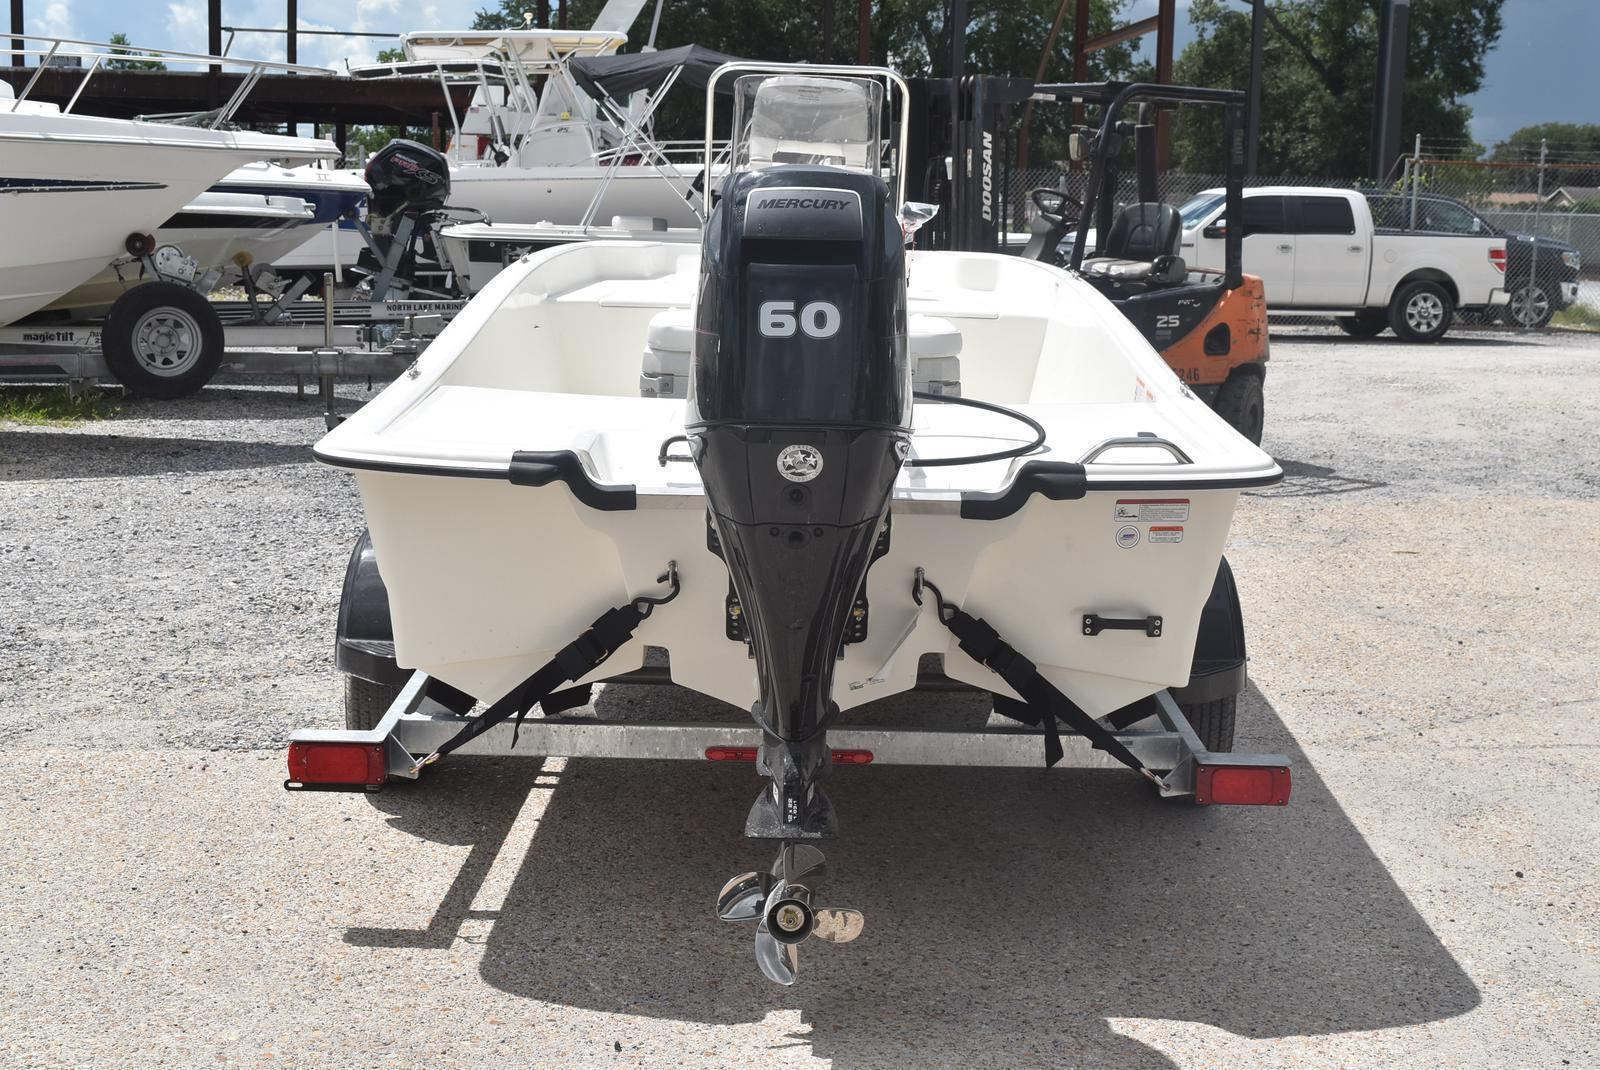 2020 Mako boat for sale, model of the boat is Pro Skiff 17, 75 ELPT & Image # 567 of 702